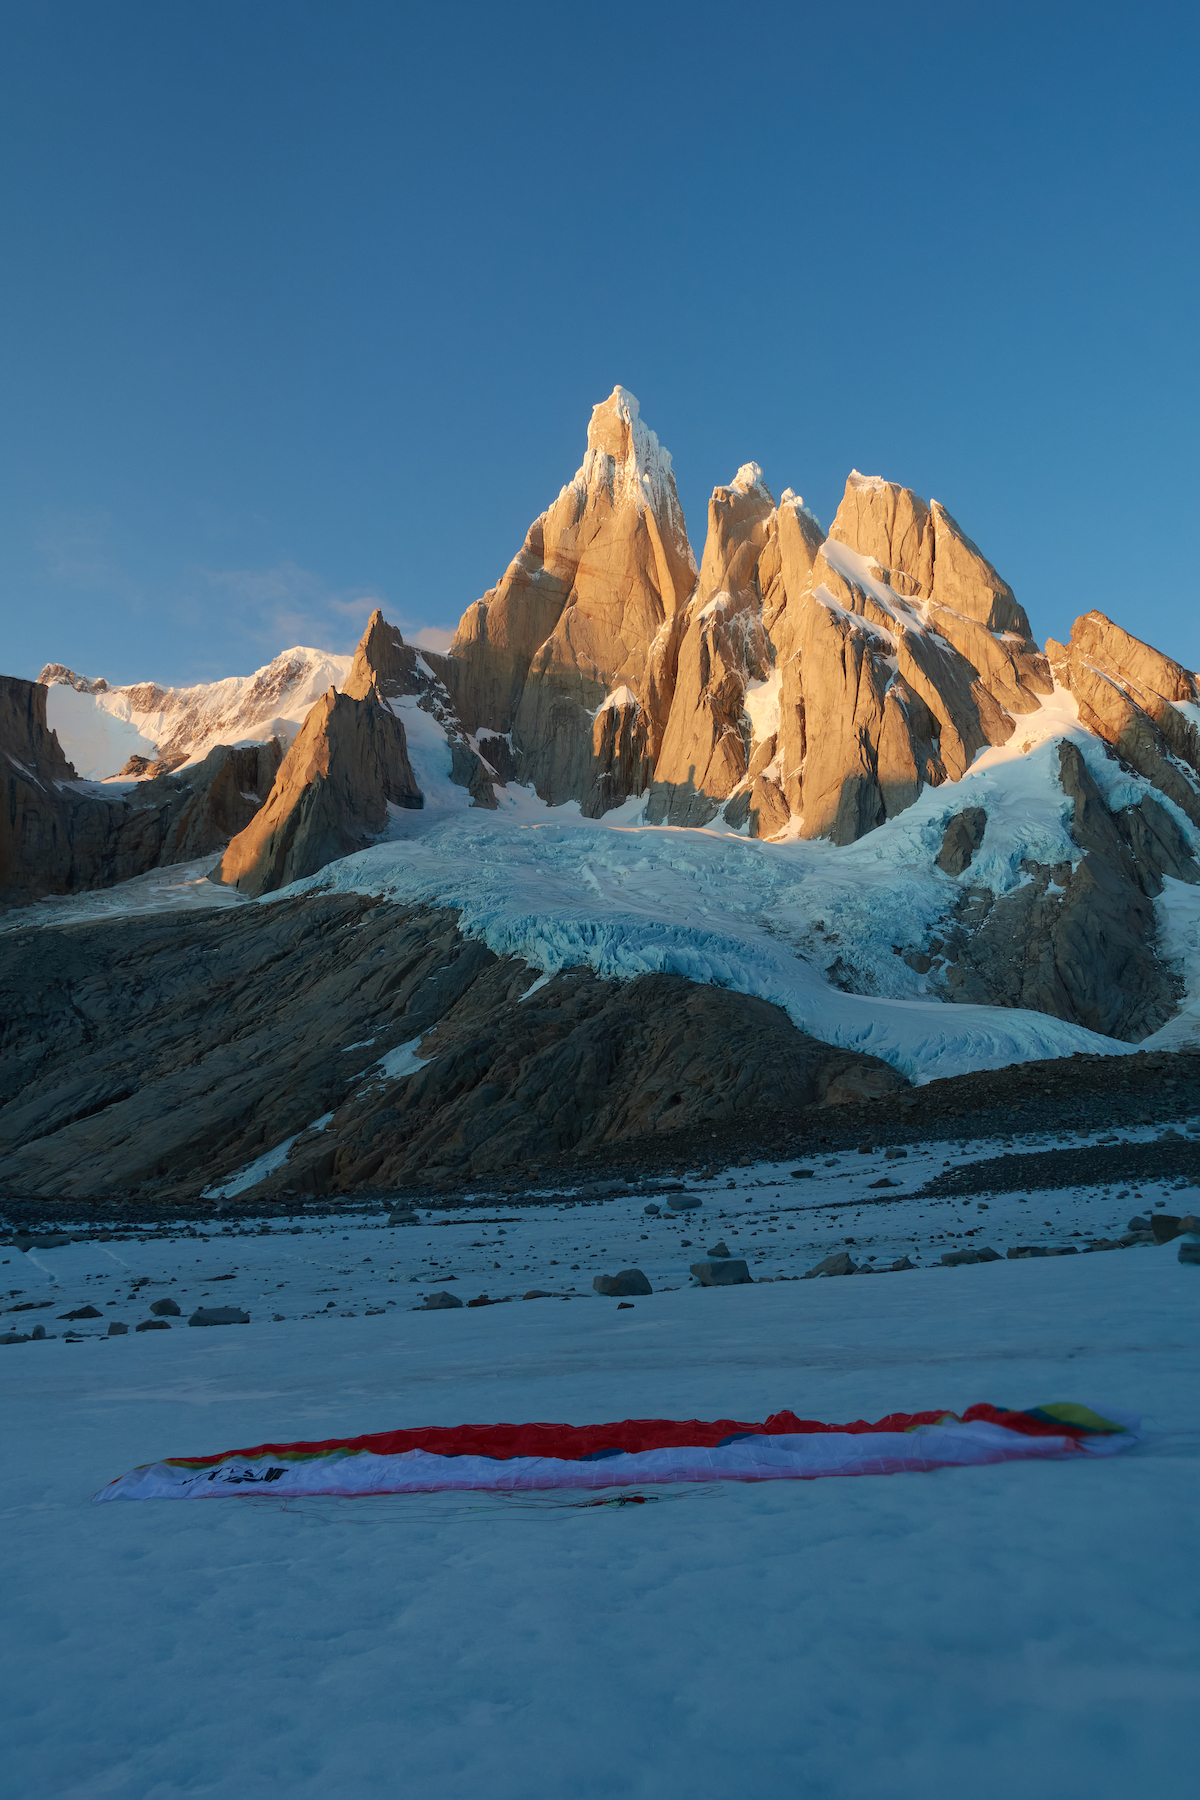 A safe landing after paragliding from the summit of Cerro Torre. [Photo] Courtesy of Fabian Buhl